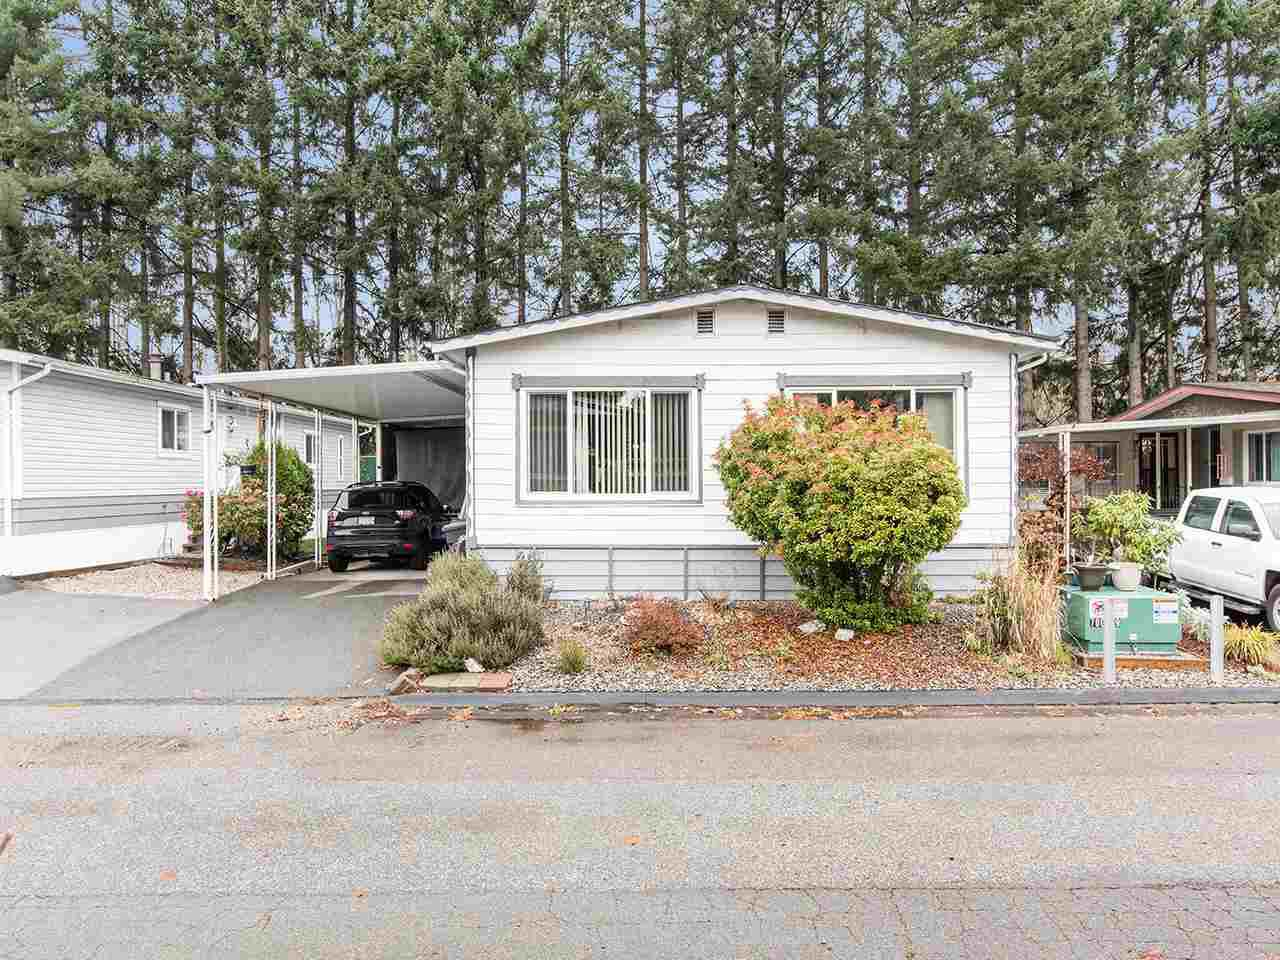 """Main Photo: 297 1840 160 Street in Surrey: King George Corridor Manufactured Home for sale in """"BREAKAWAY BAYS"""" (South Surrey White Rock)  : MLS®# R2519884"""